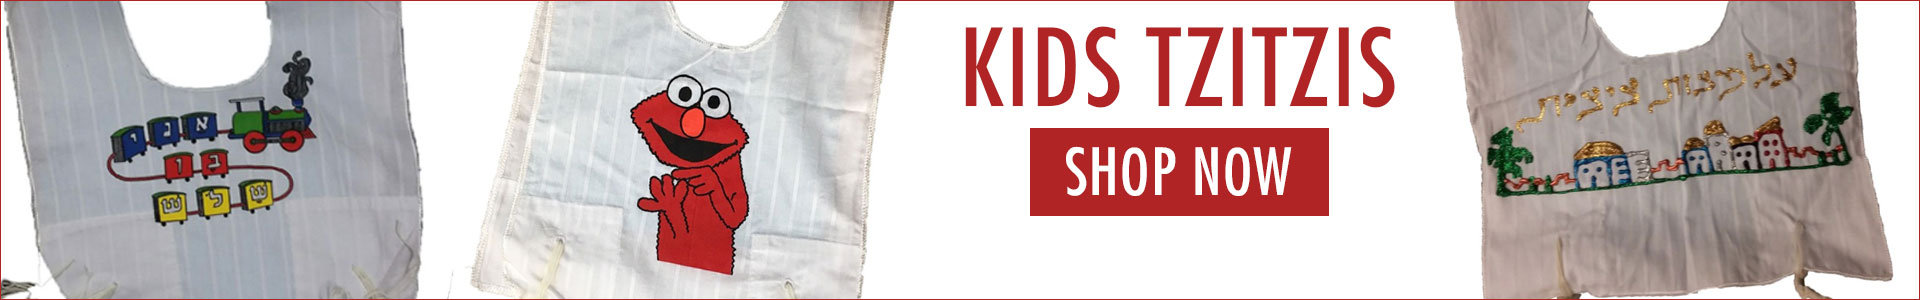 Shop Kids Tzitzis